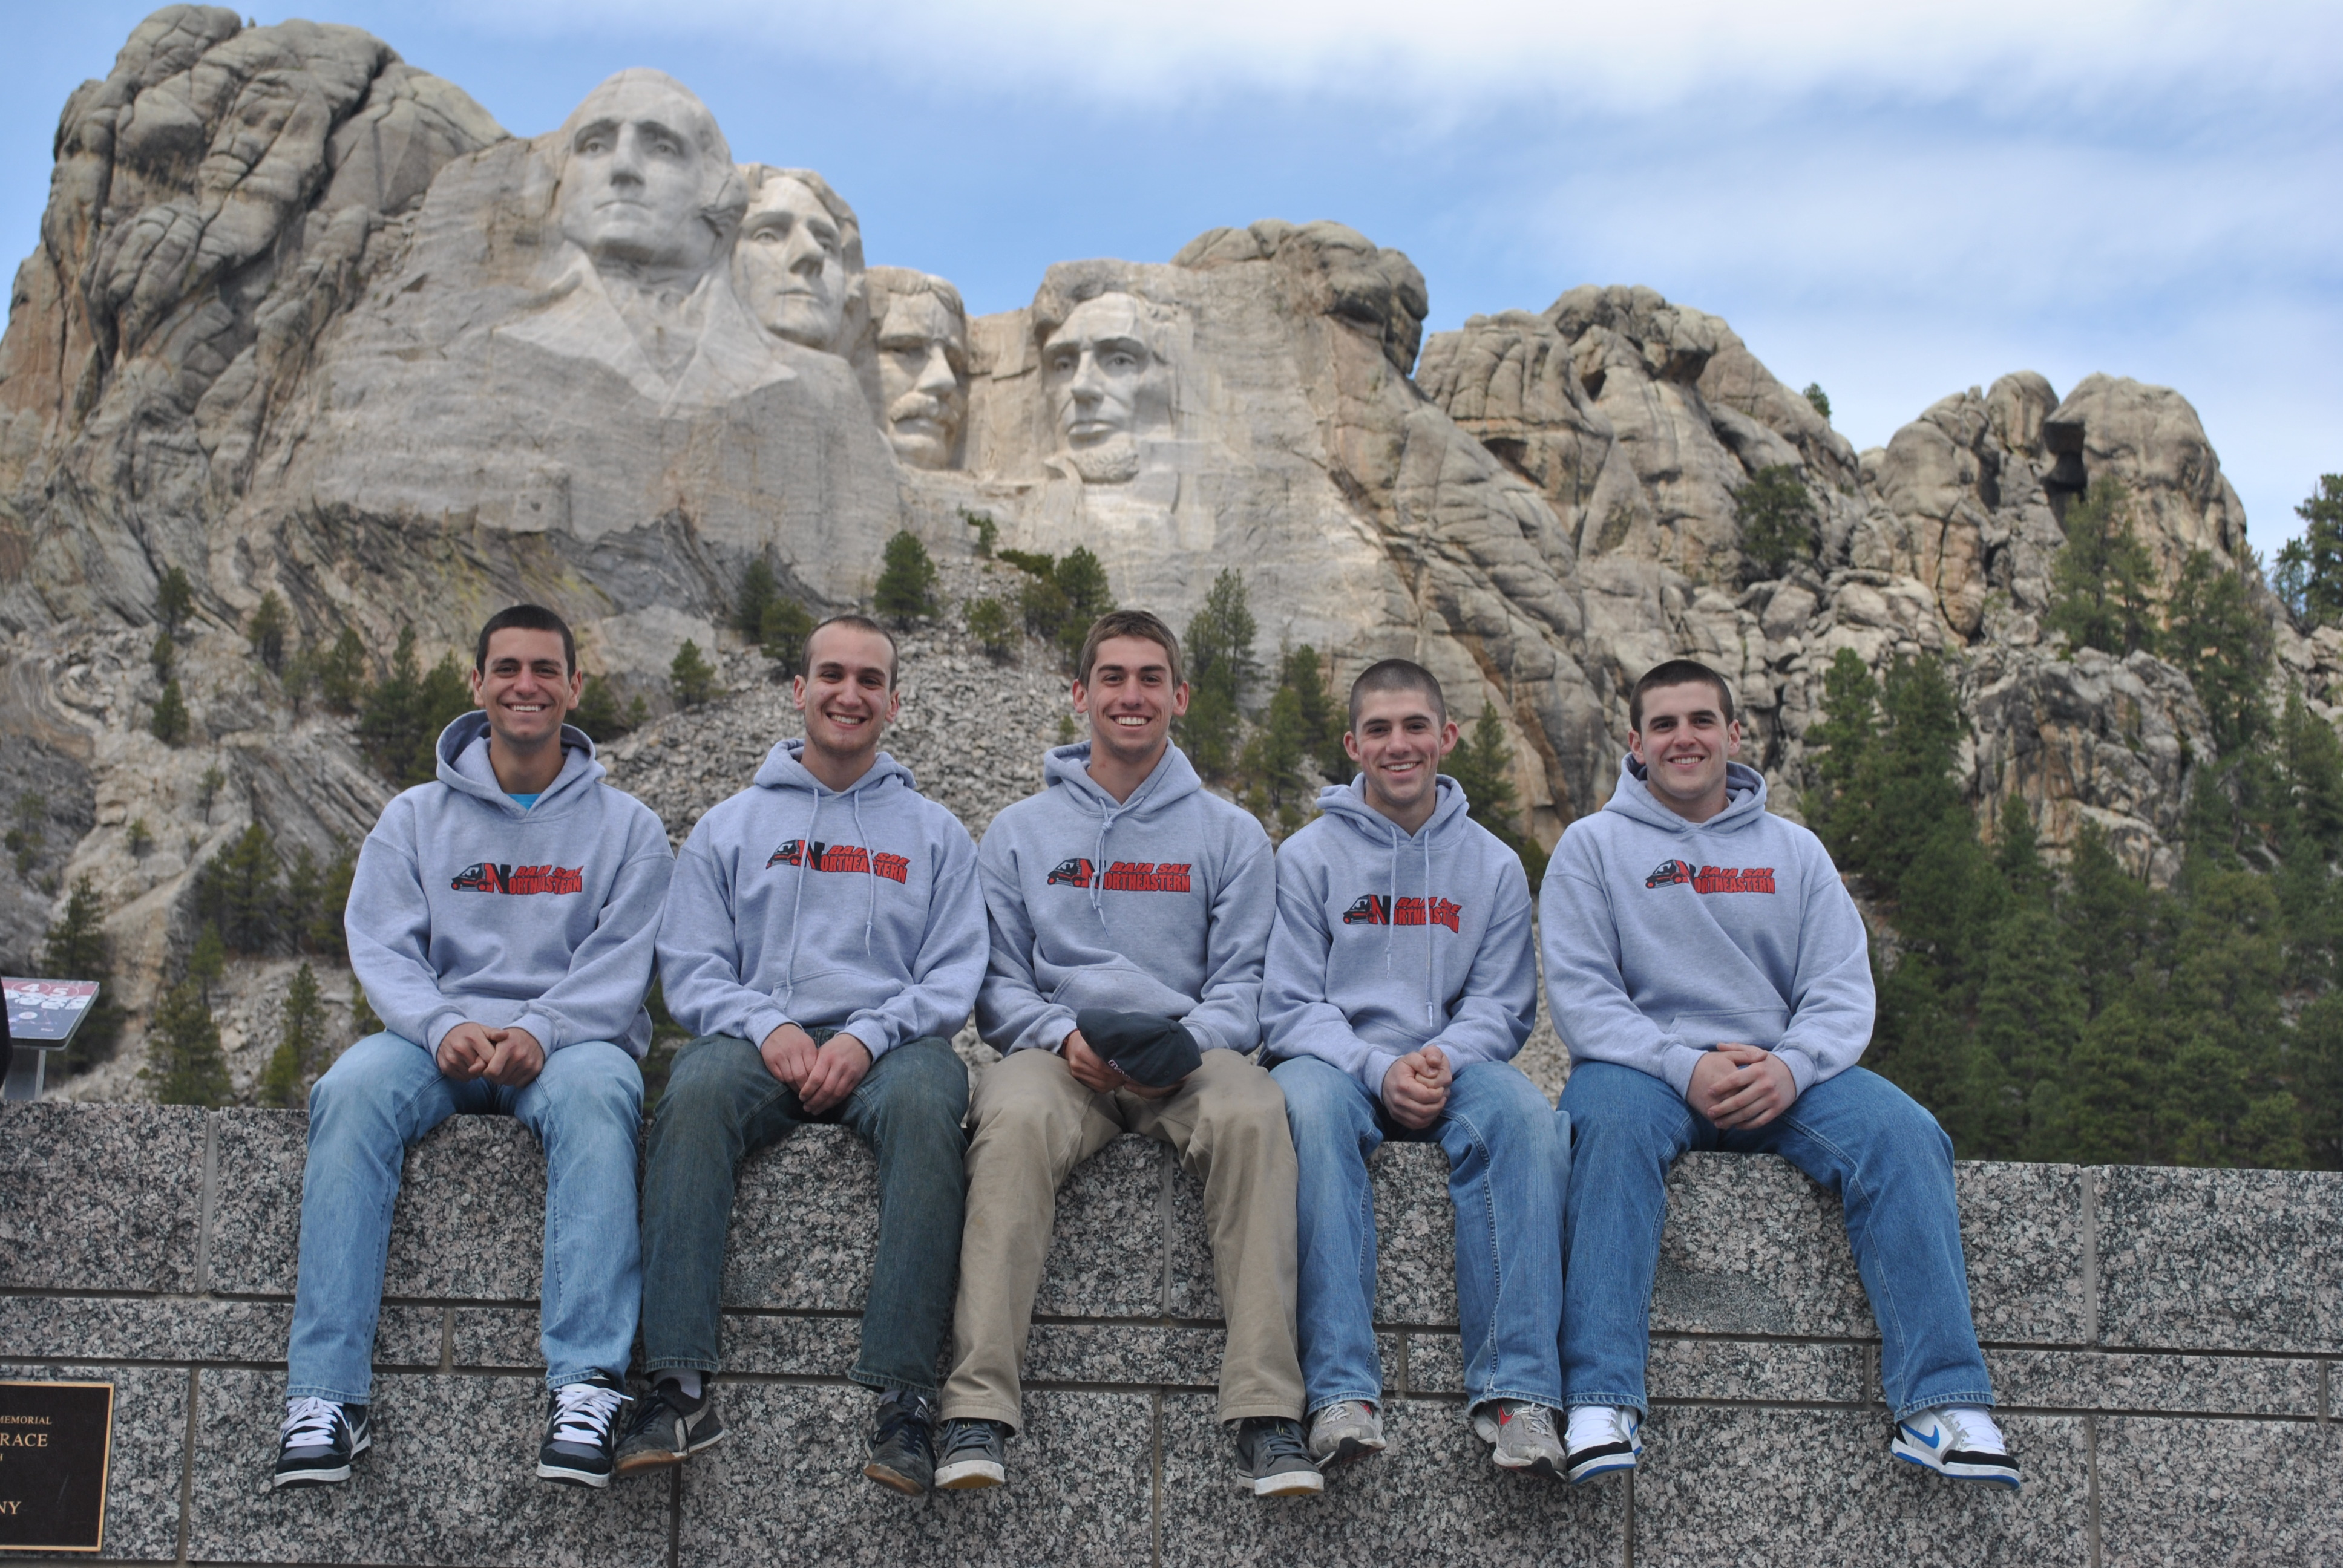 Mt t shirt design. Mount rushmore clipart